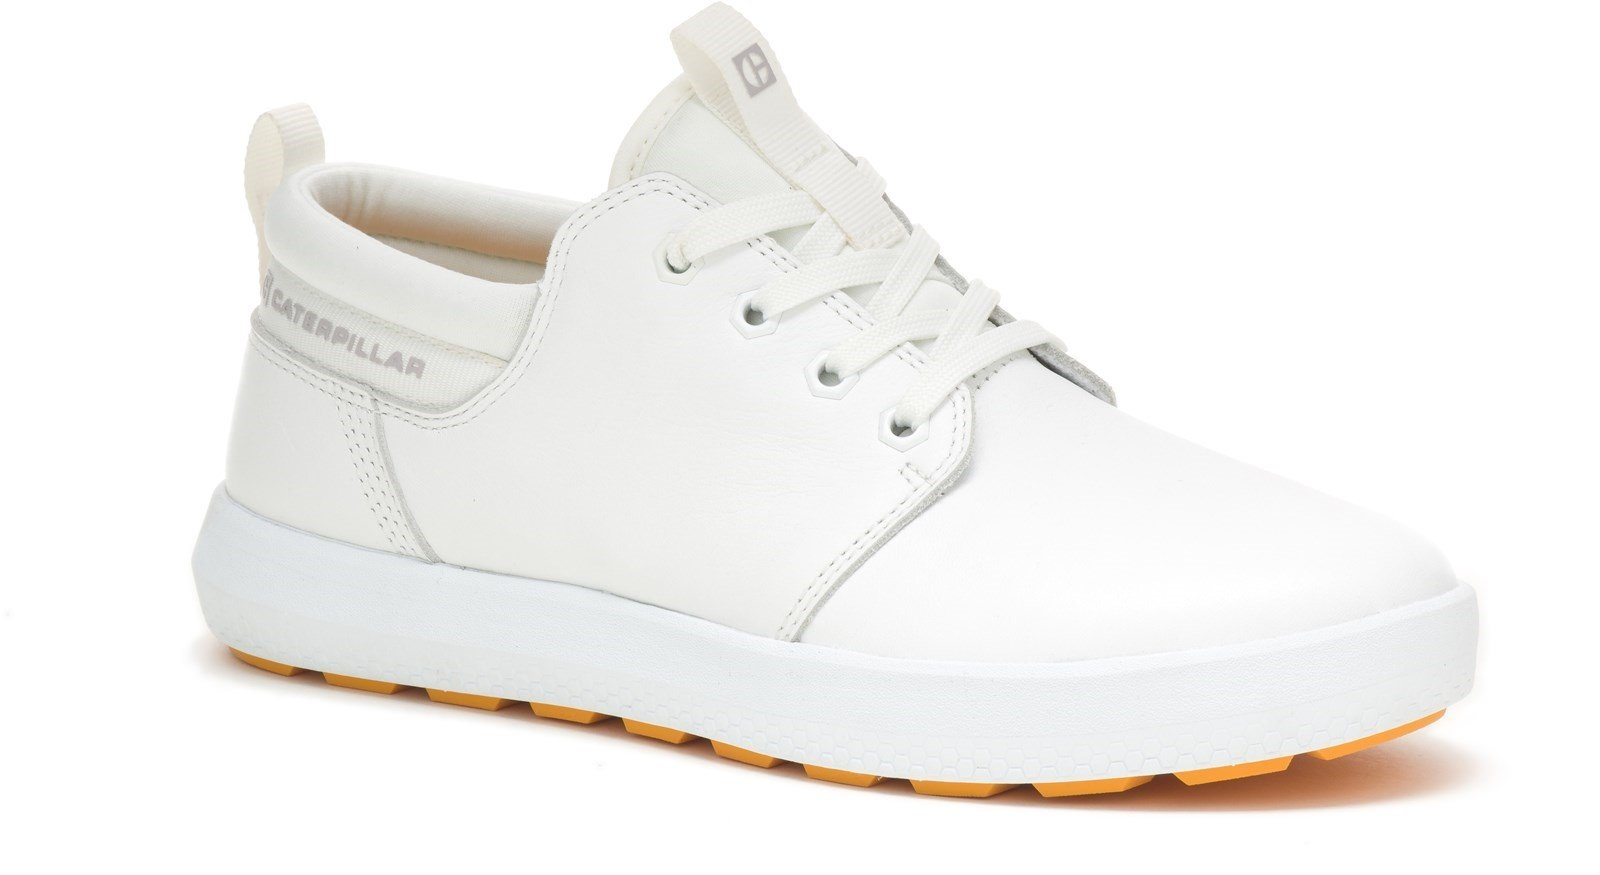 CAT Lifestyle Men's Code Proxy Lace Trainer Various Colours 32263 - Star White 8